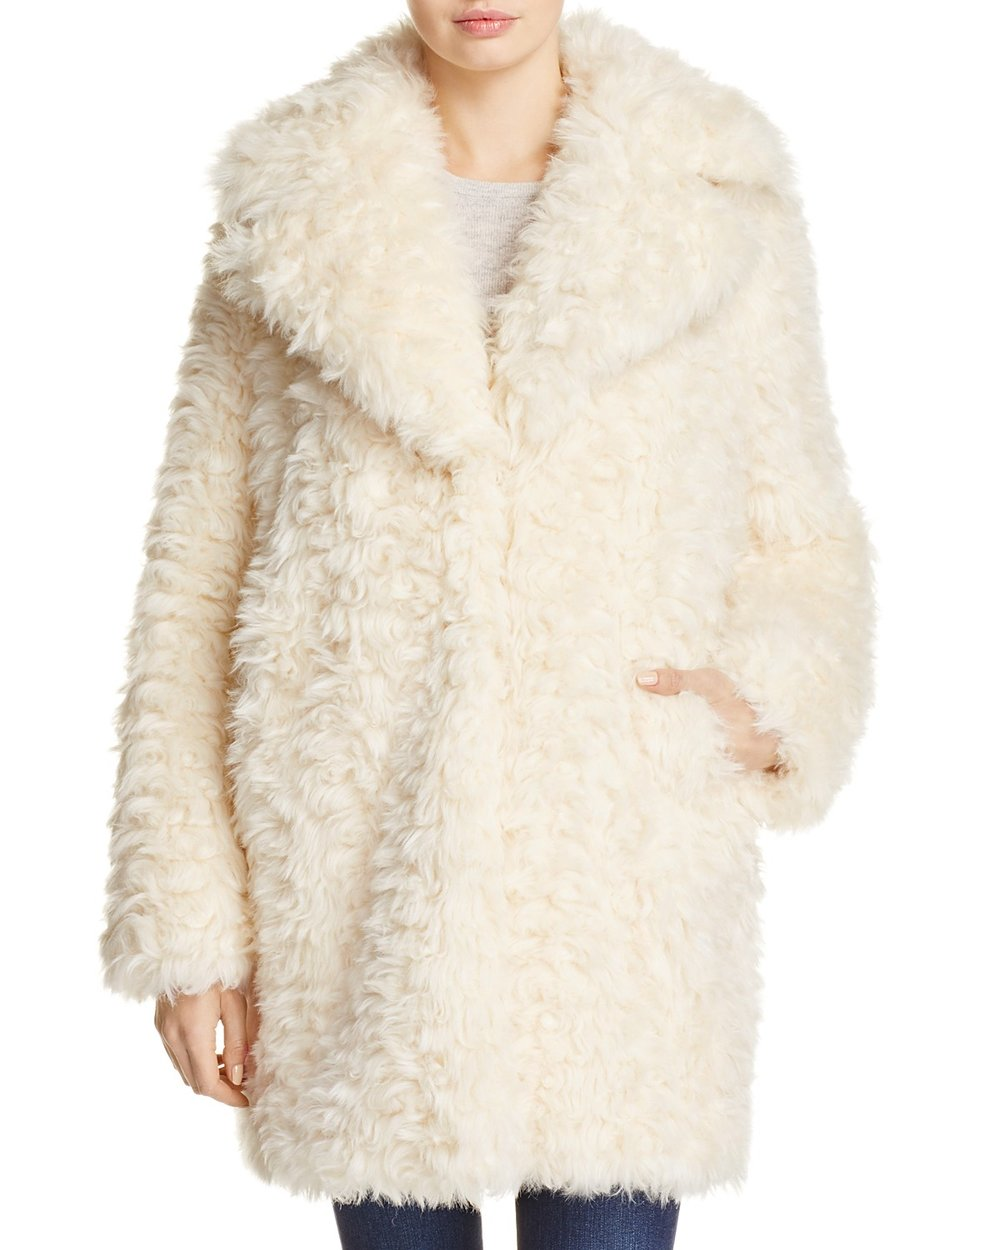 Kendall & Kylie Faux Fur Coat